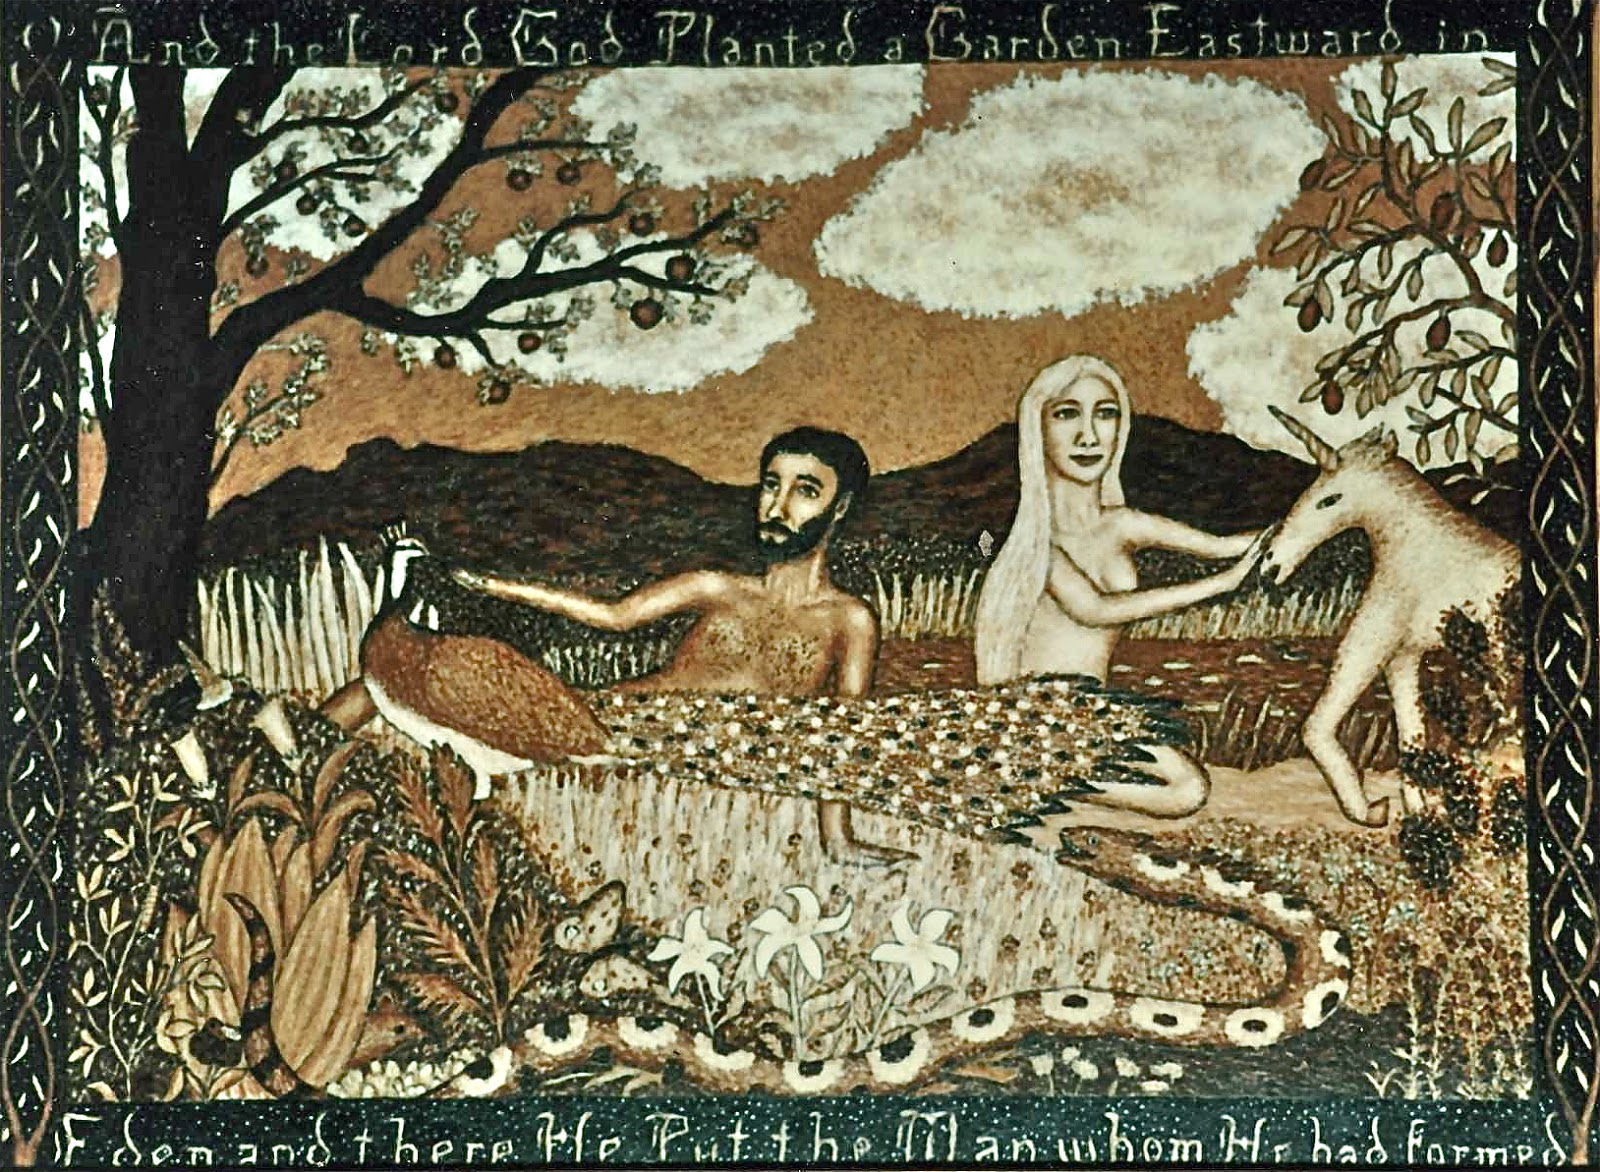 Stephen Warde Anderson Art: The Temptation of Eve